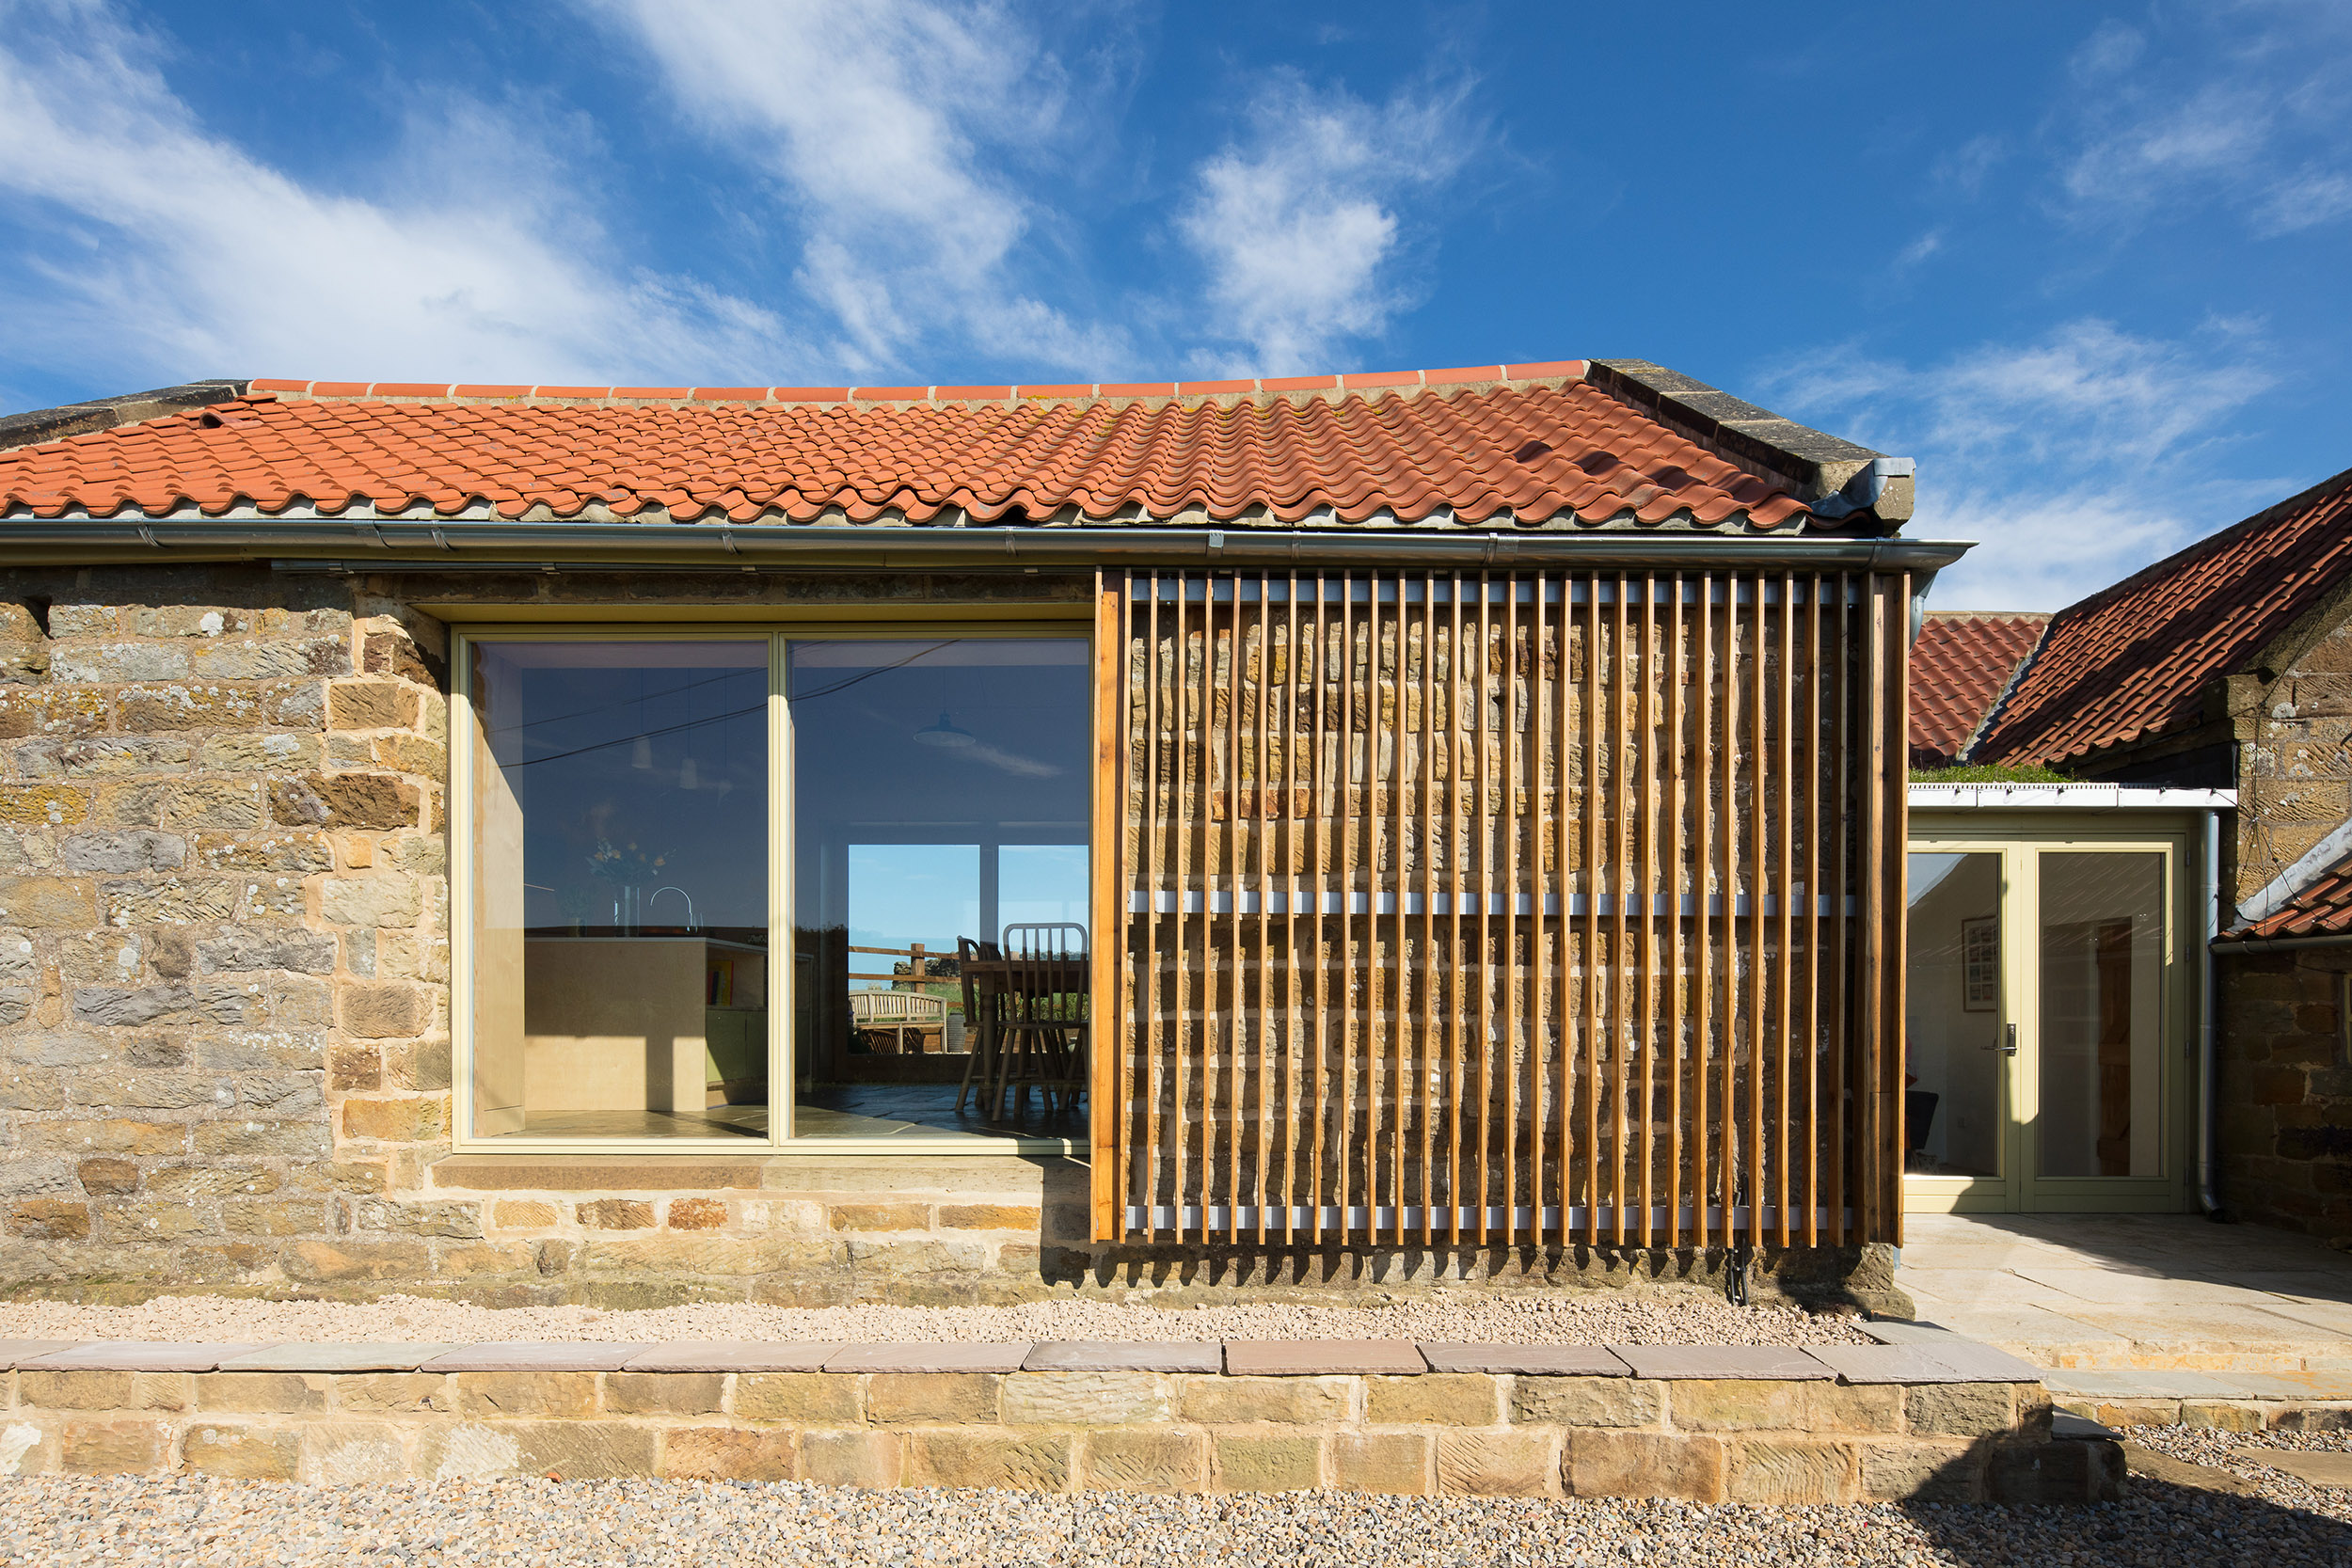 harper-perry-architects-housing-barn-westerdale-north-yorkshire-sliding-screen-open